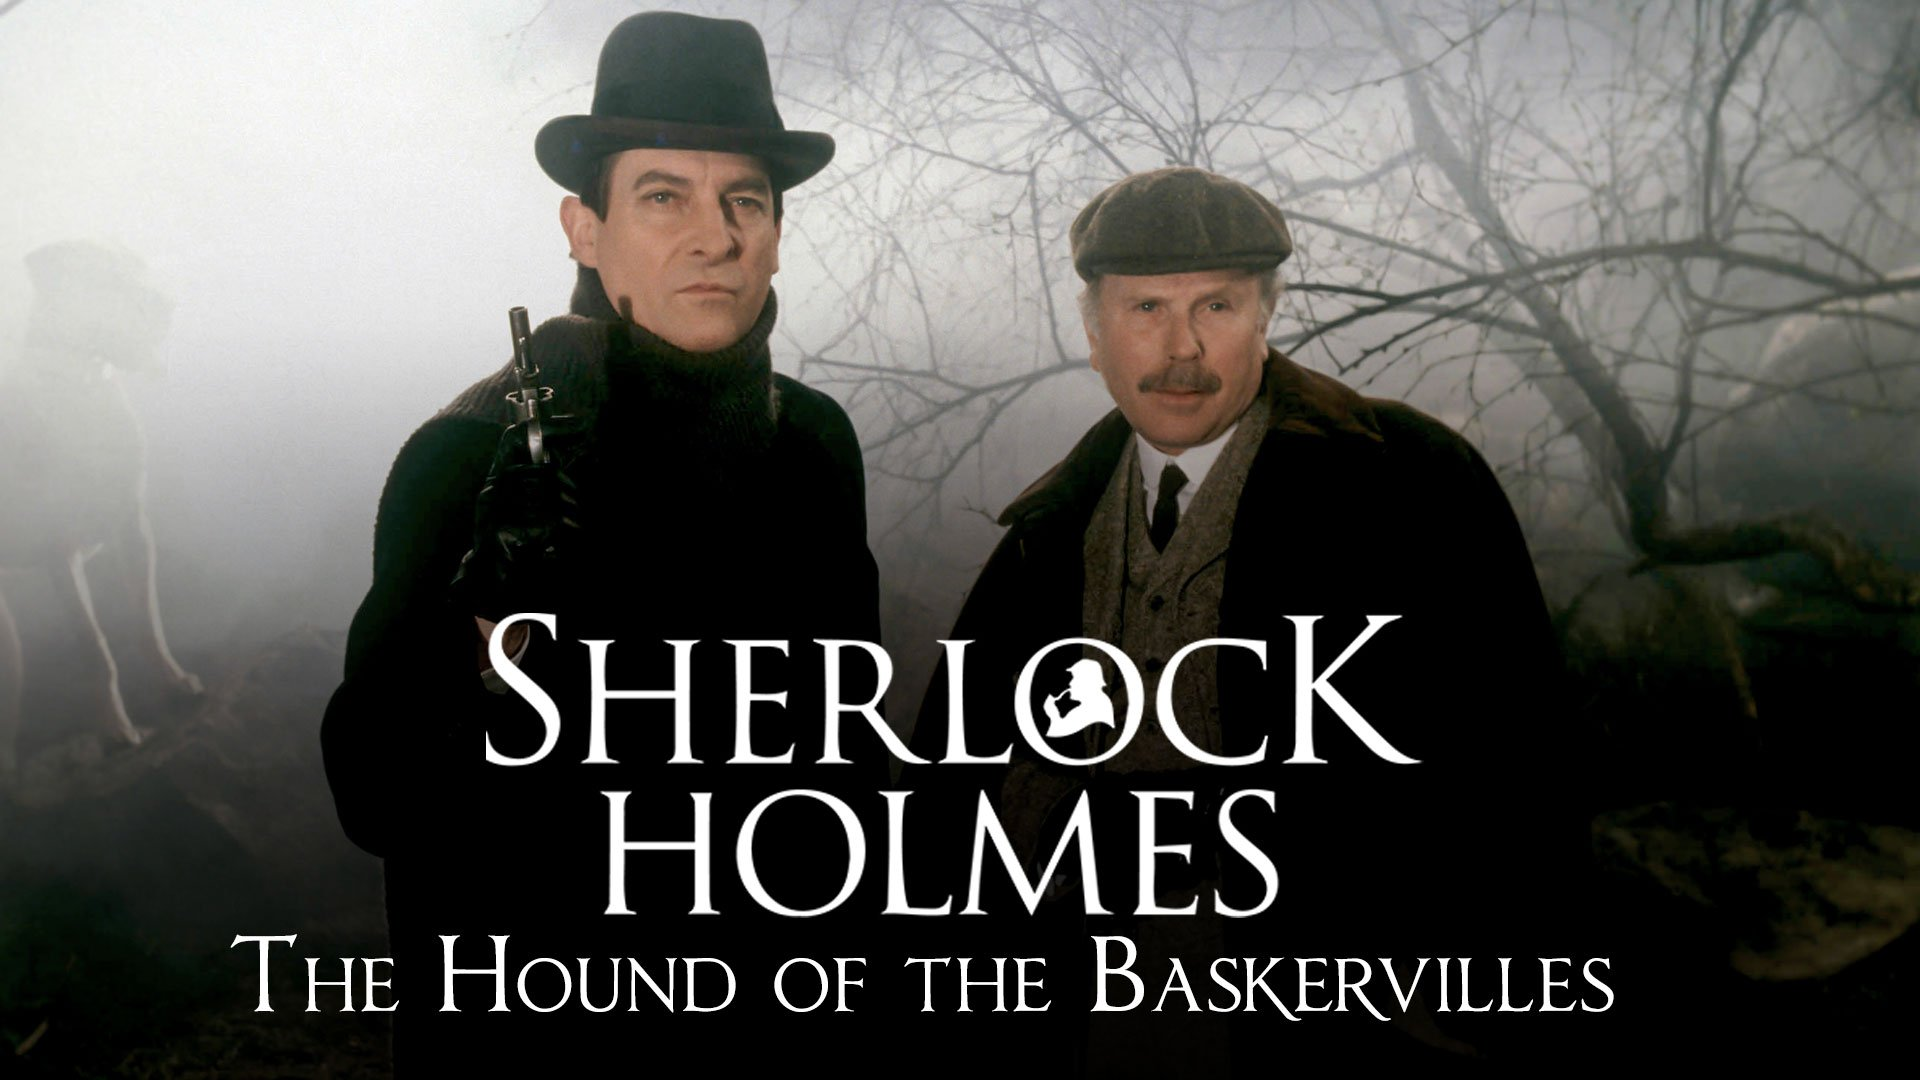 Sherlock Holmes: The Hound of the Baskervilles on BritBox UK